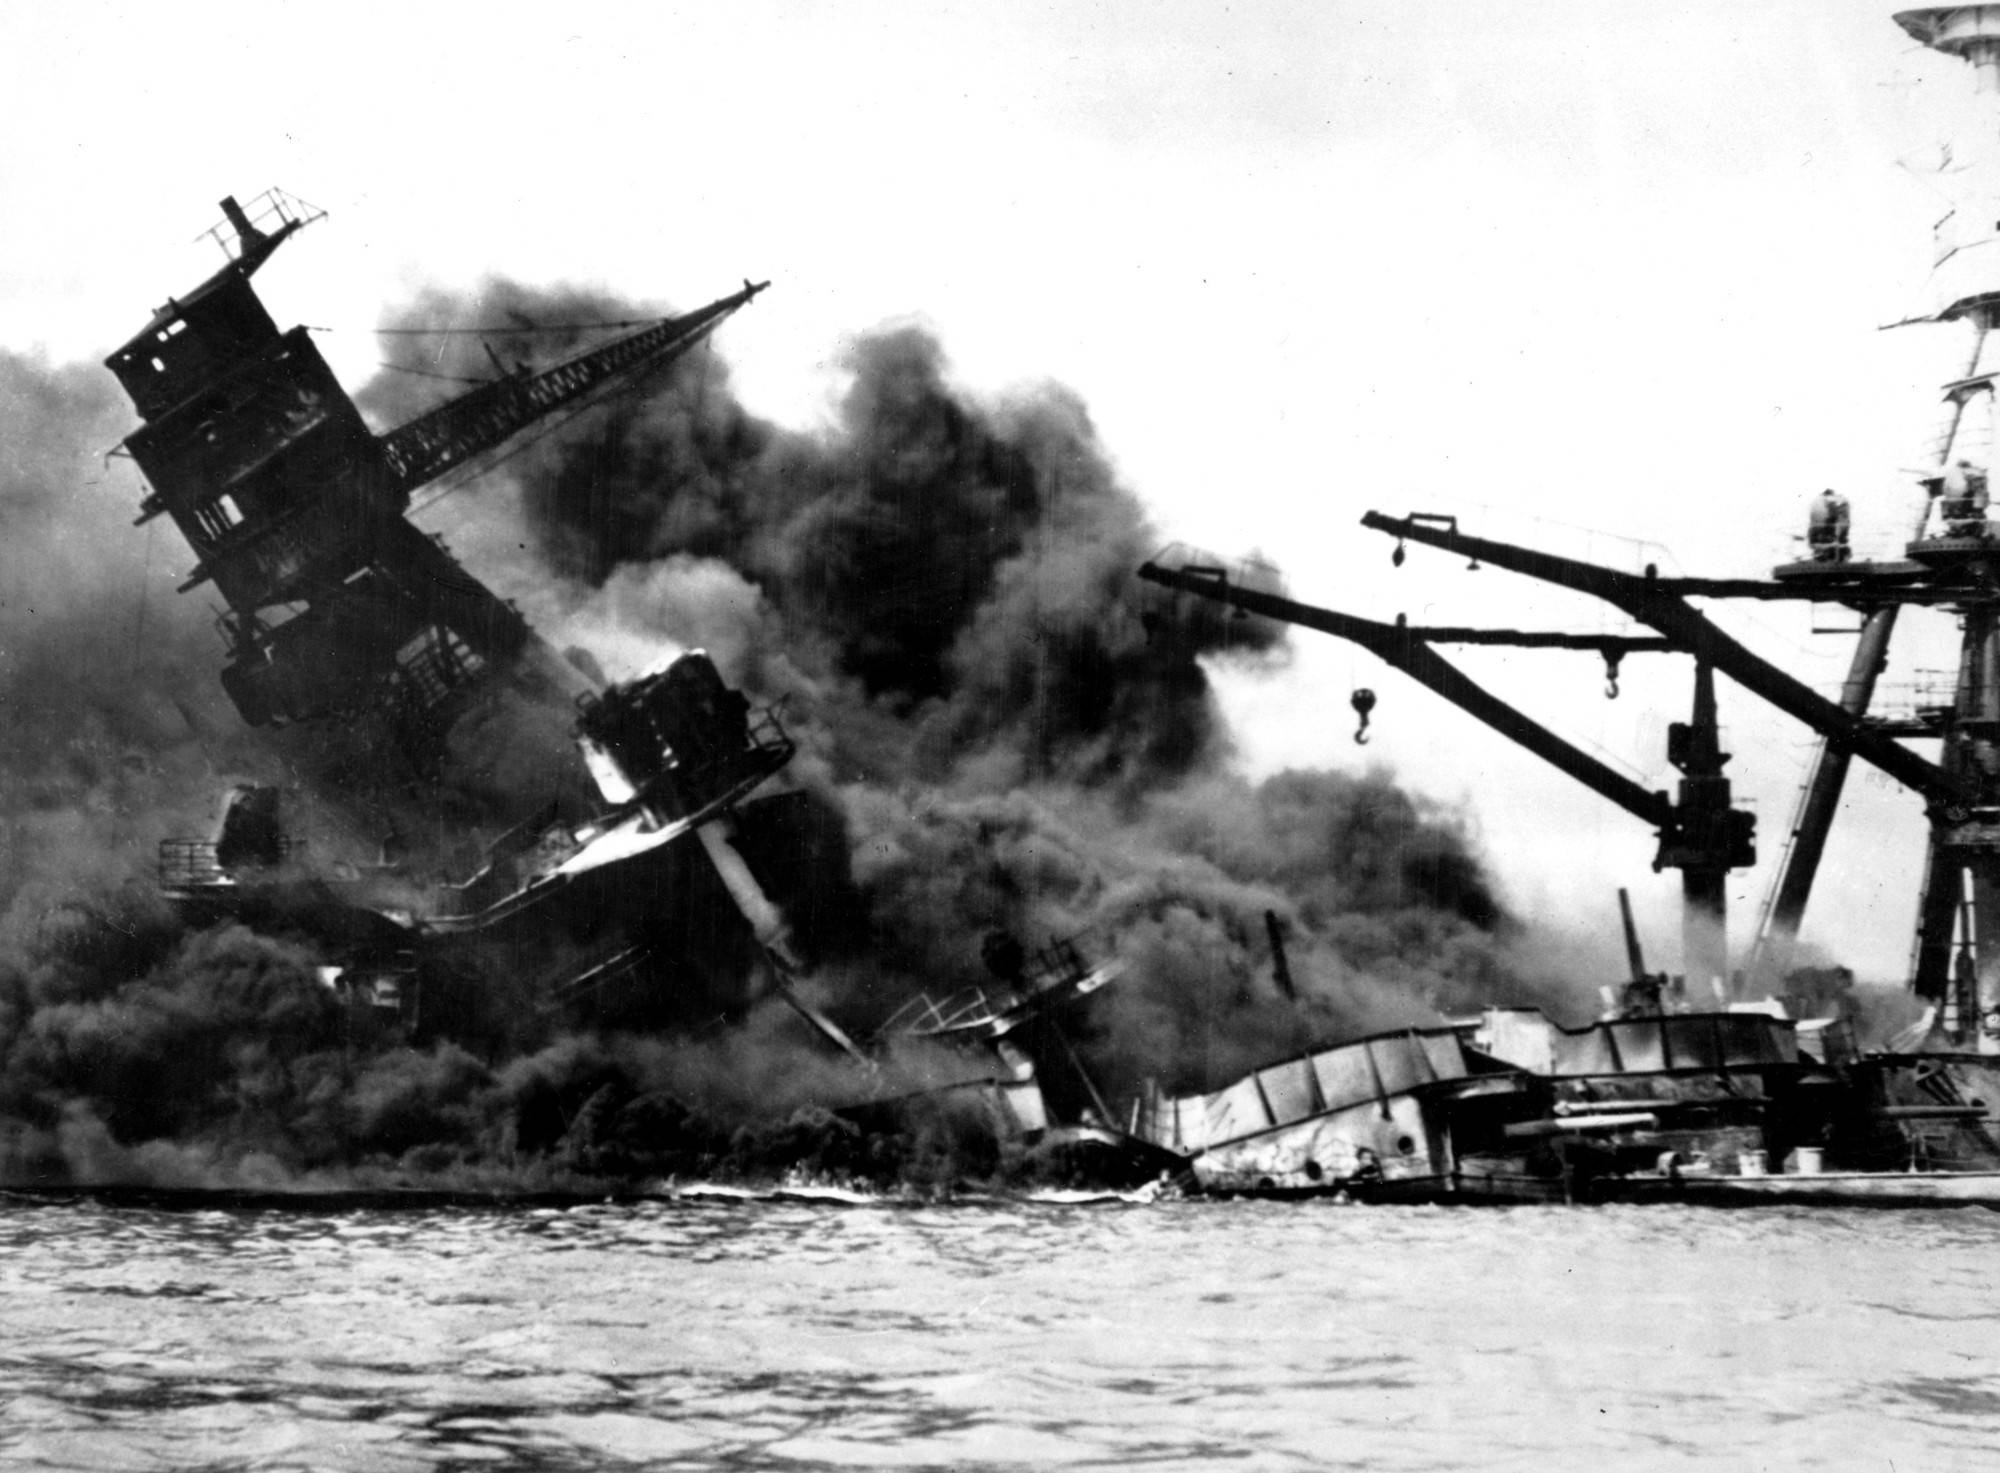 Images: Scenes from the Bombing of Pearl Harbor, Dec. 7, 1941